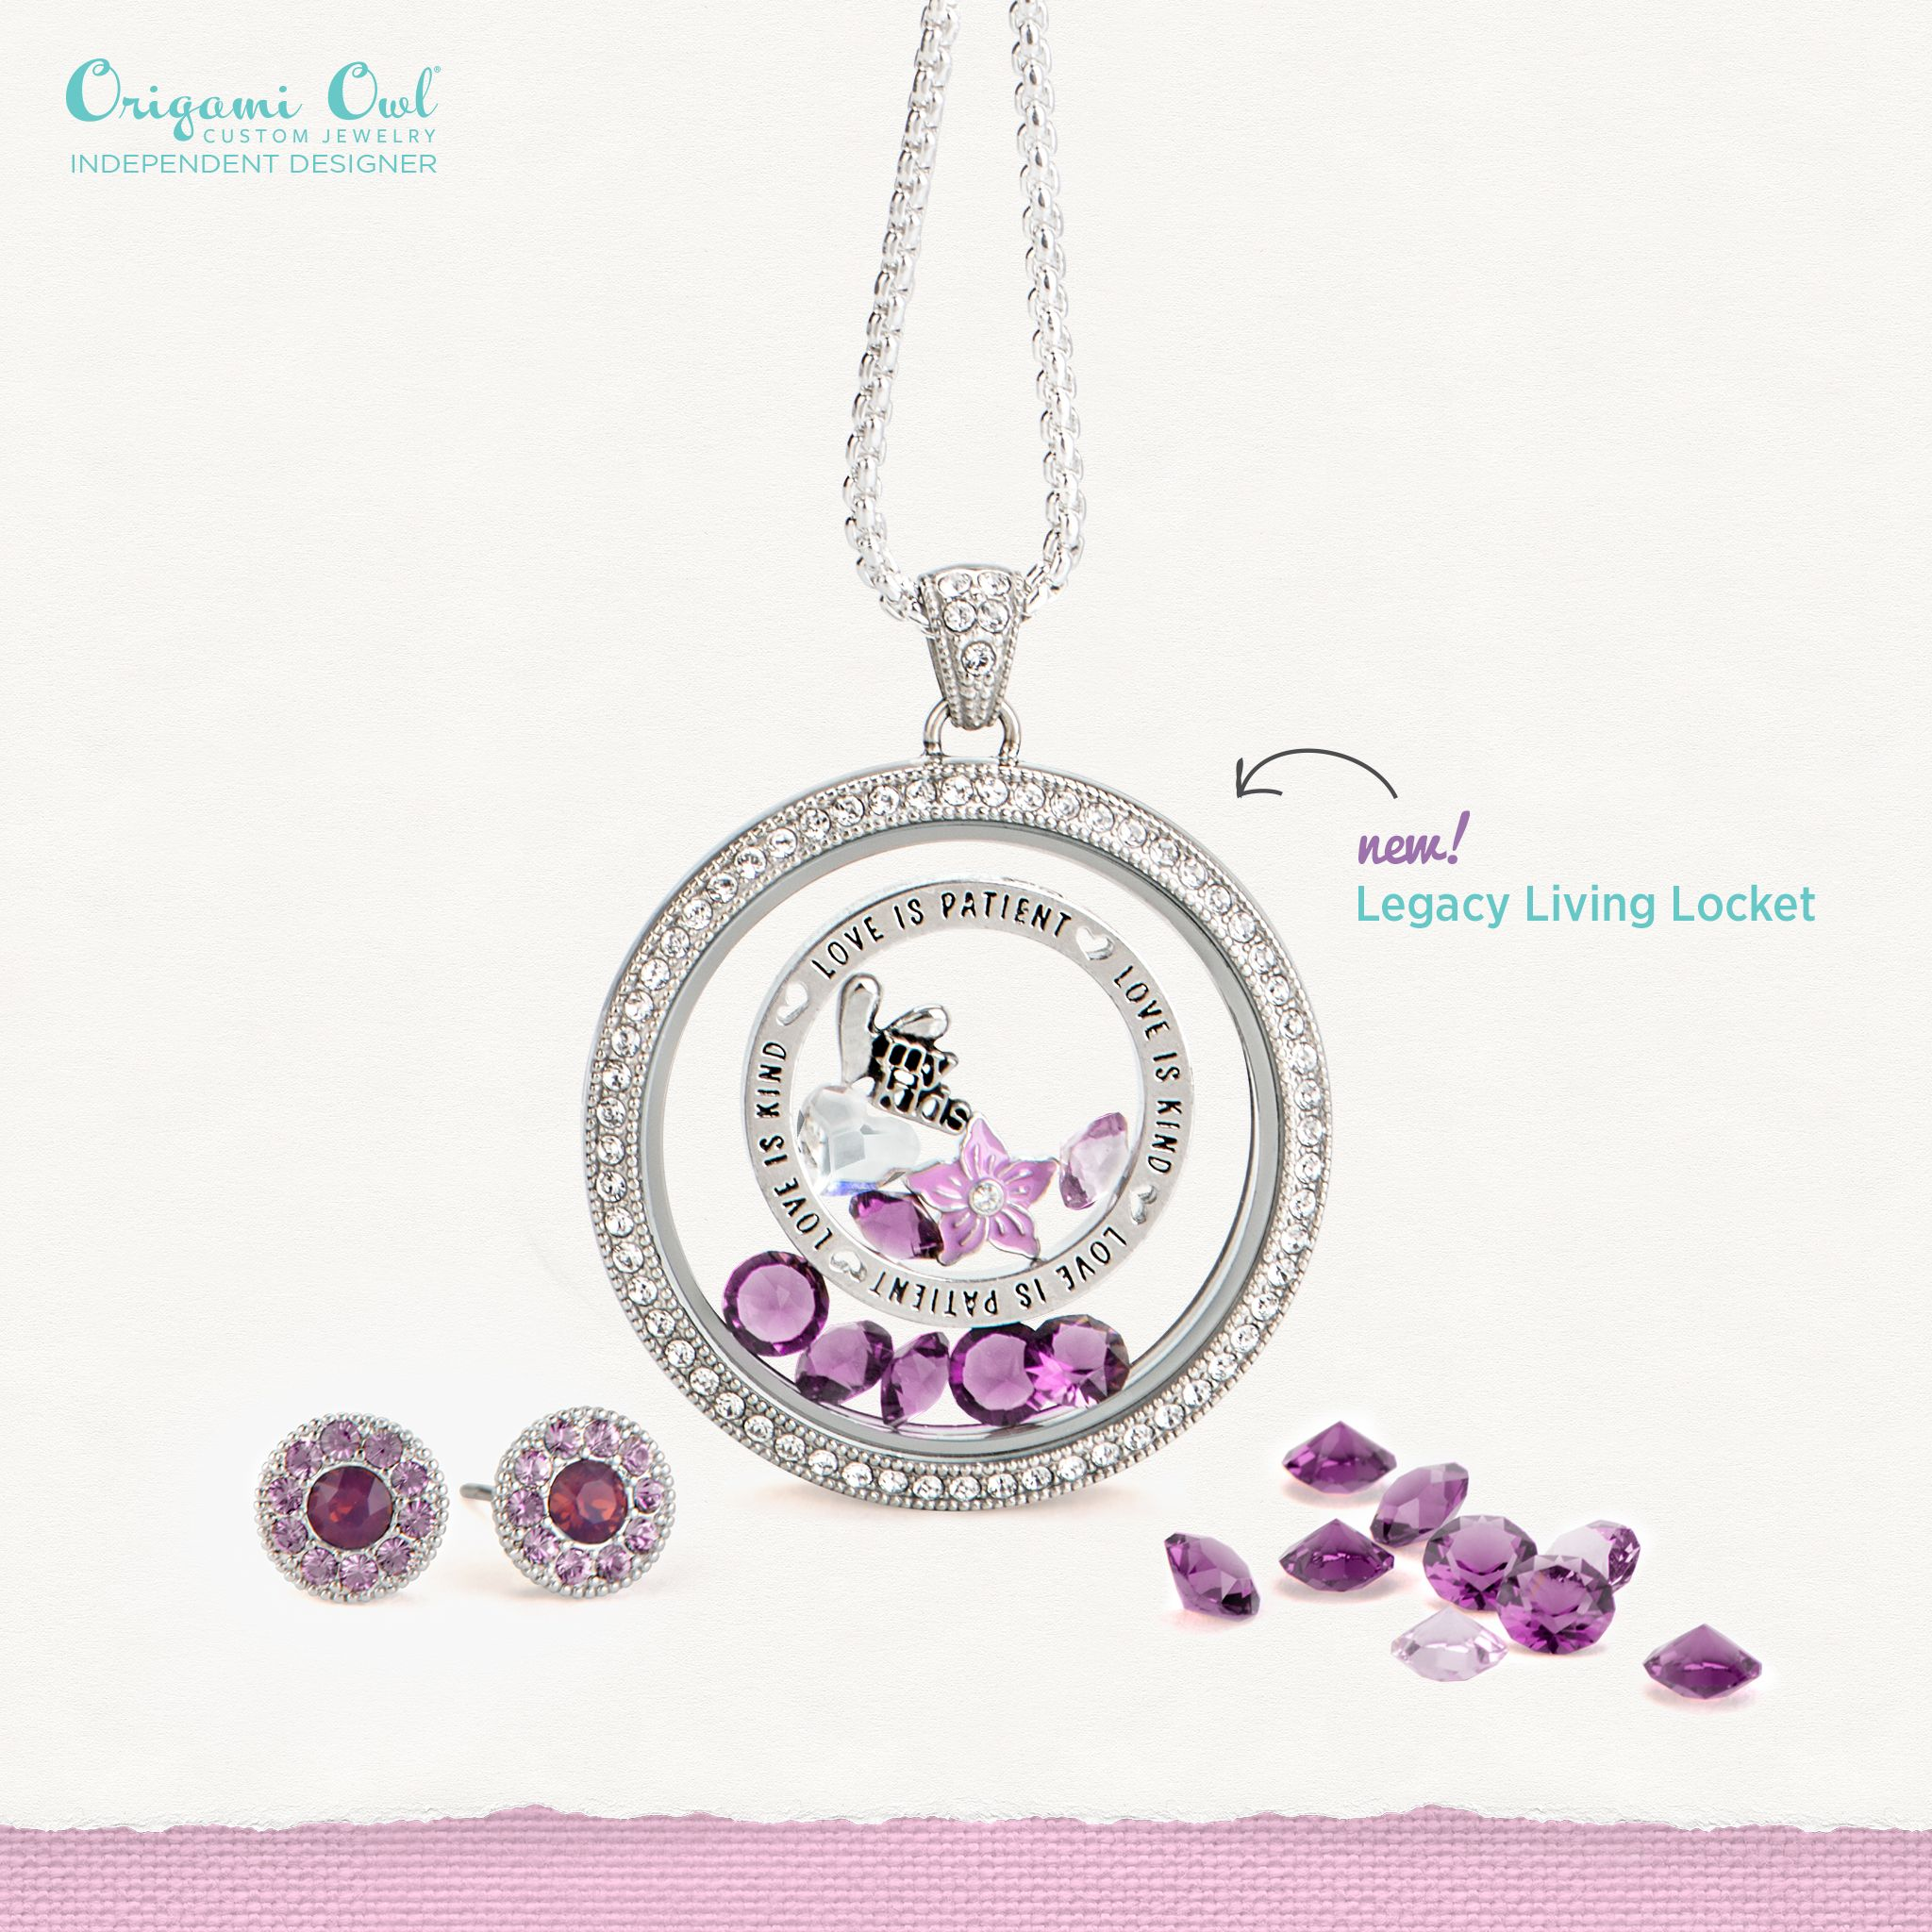 origami owl mothers day 2016 new legacy locket living